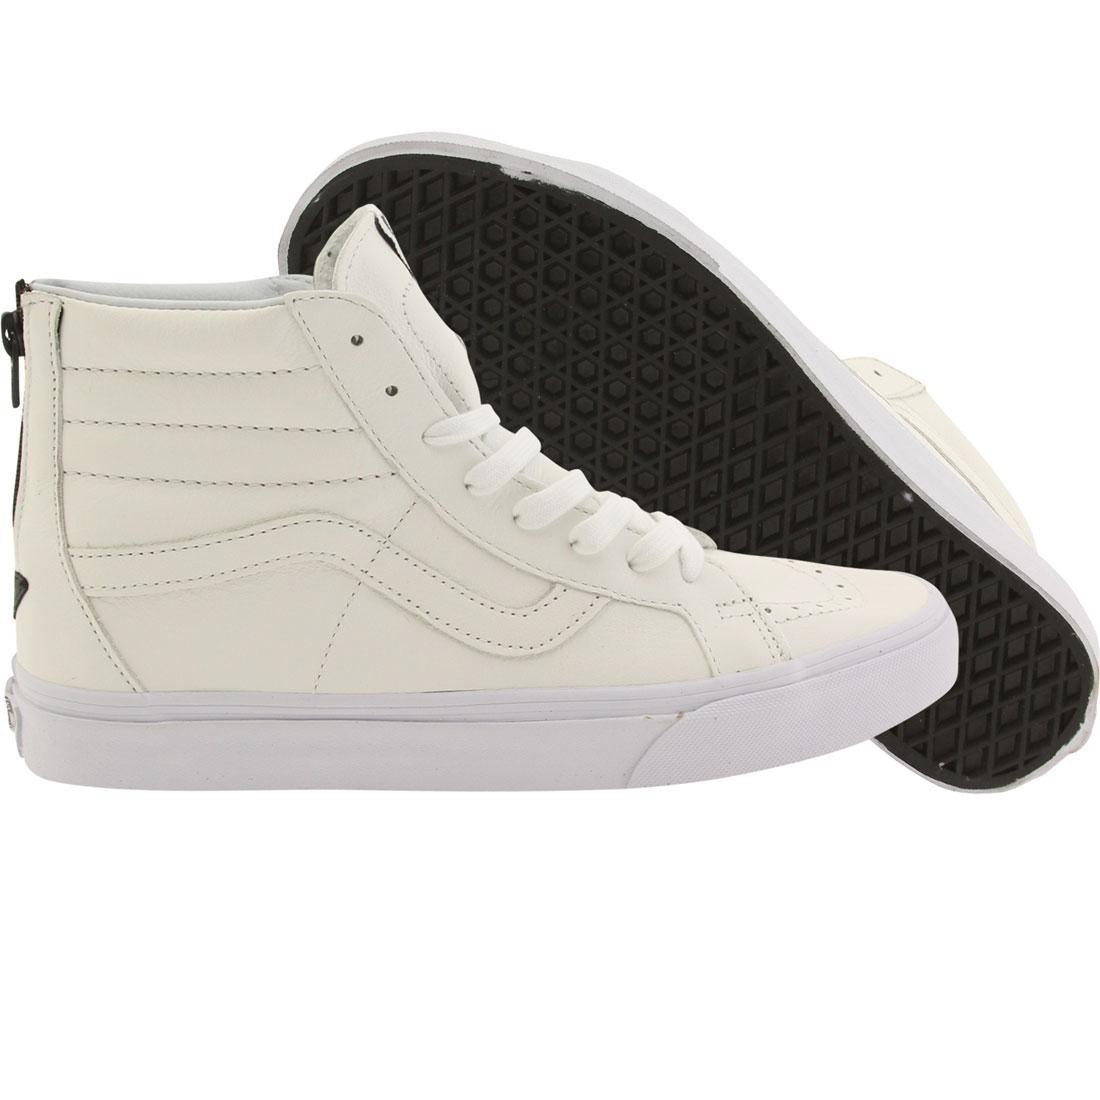 2ac598dcc6 Vans Men Sk8-Hi Reissue - Premium Leather white black